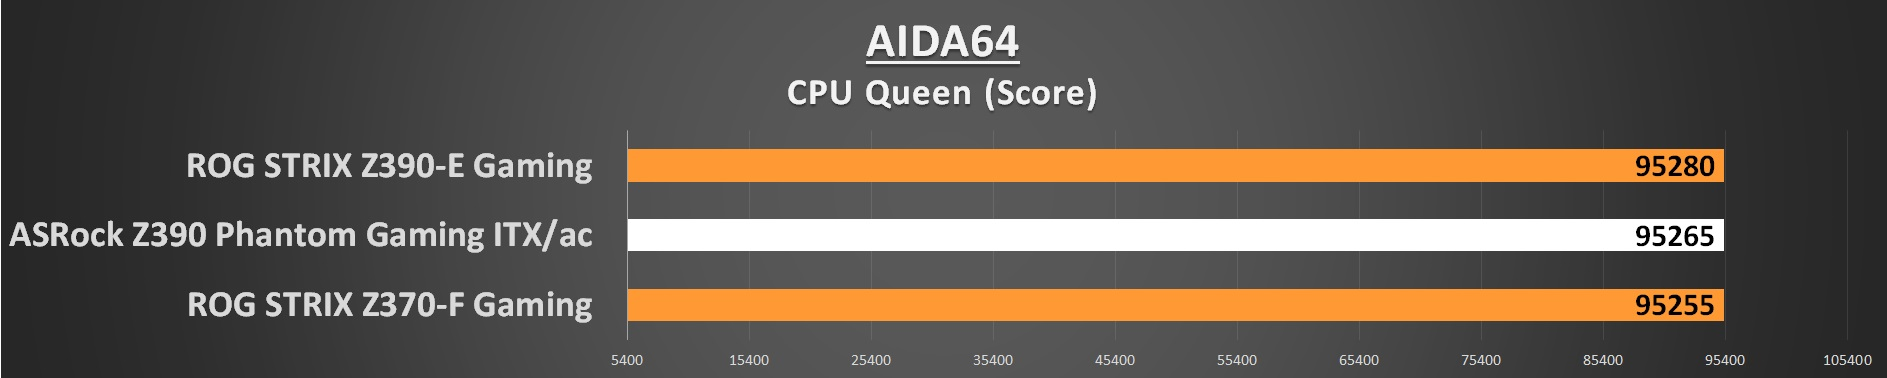 AIDA64 CPU Queen